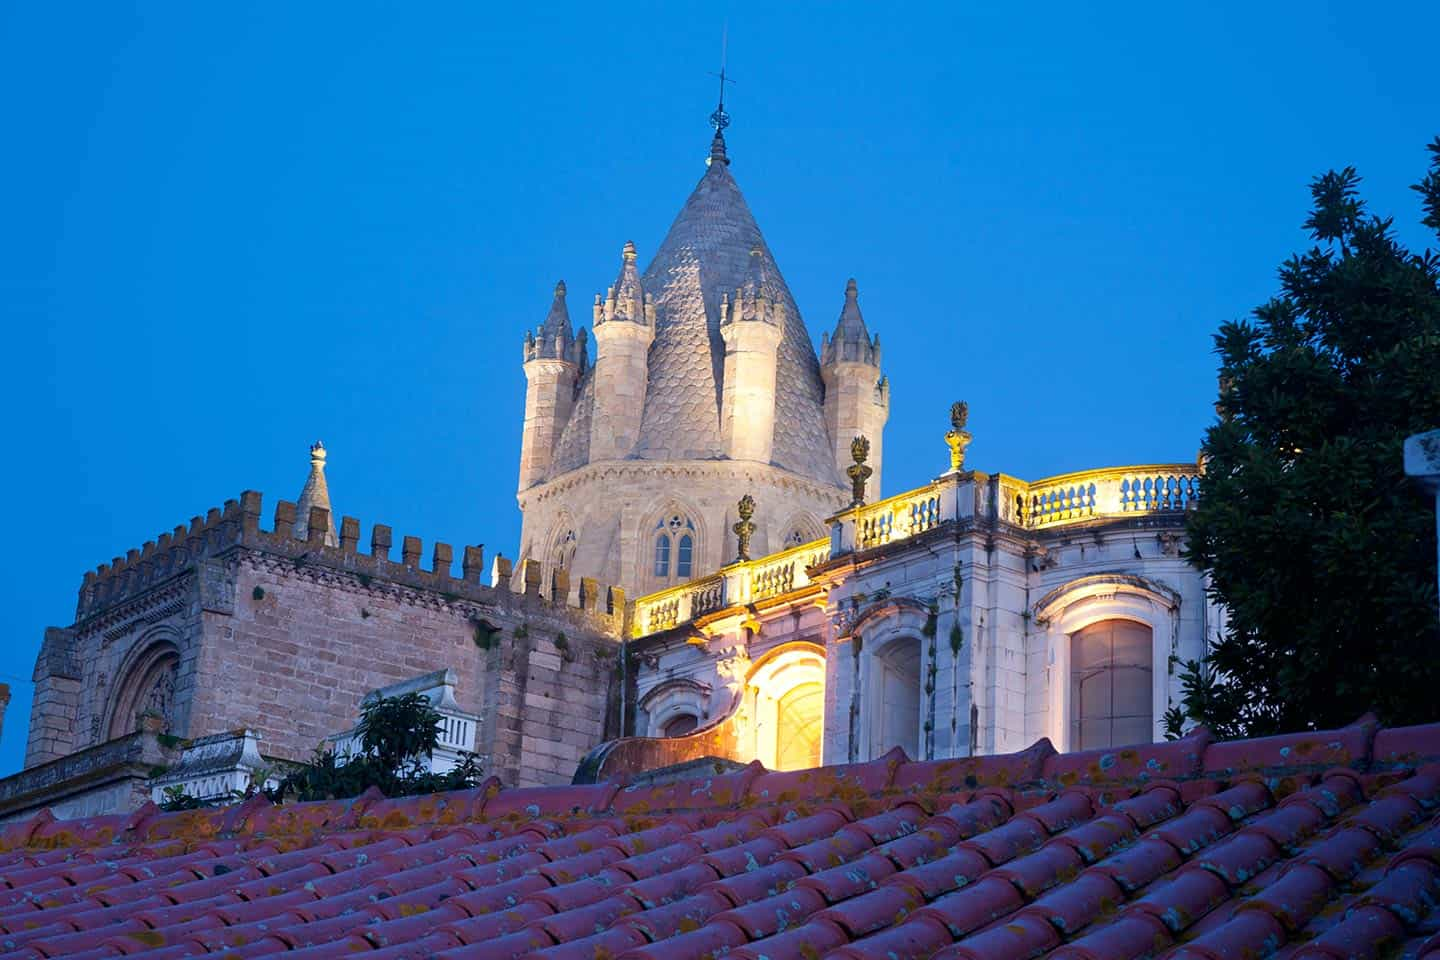 Roadtrip Portugal Image of Evora Sé or Cathedral at night